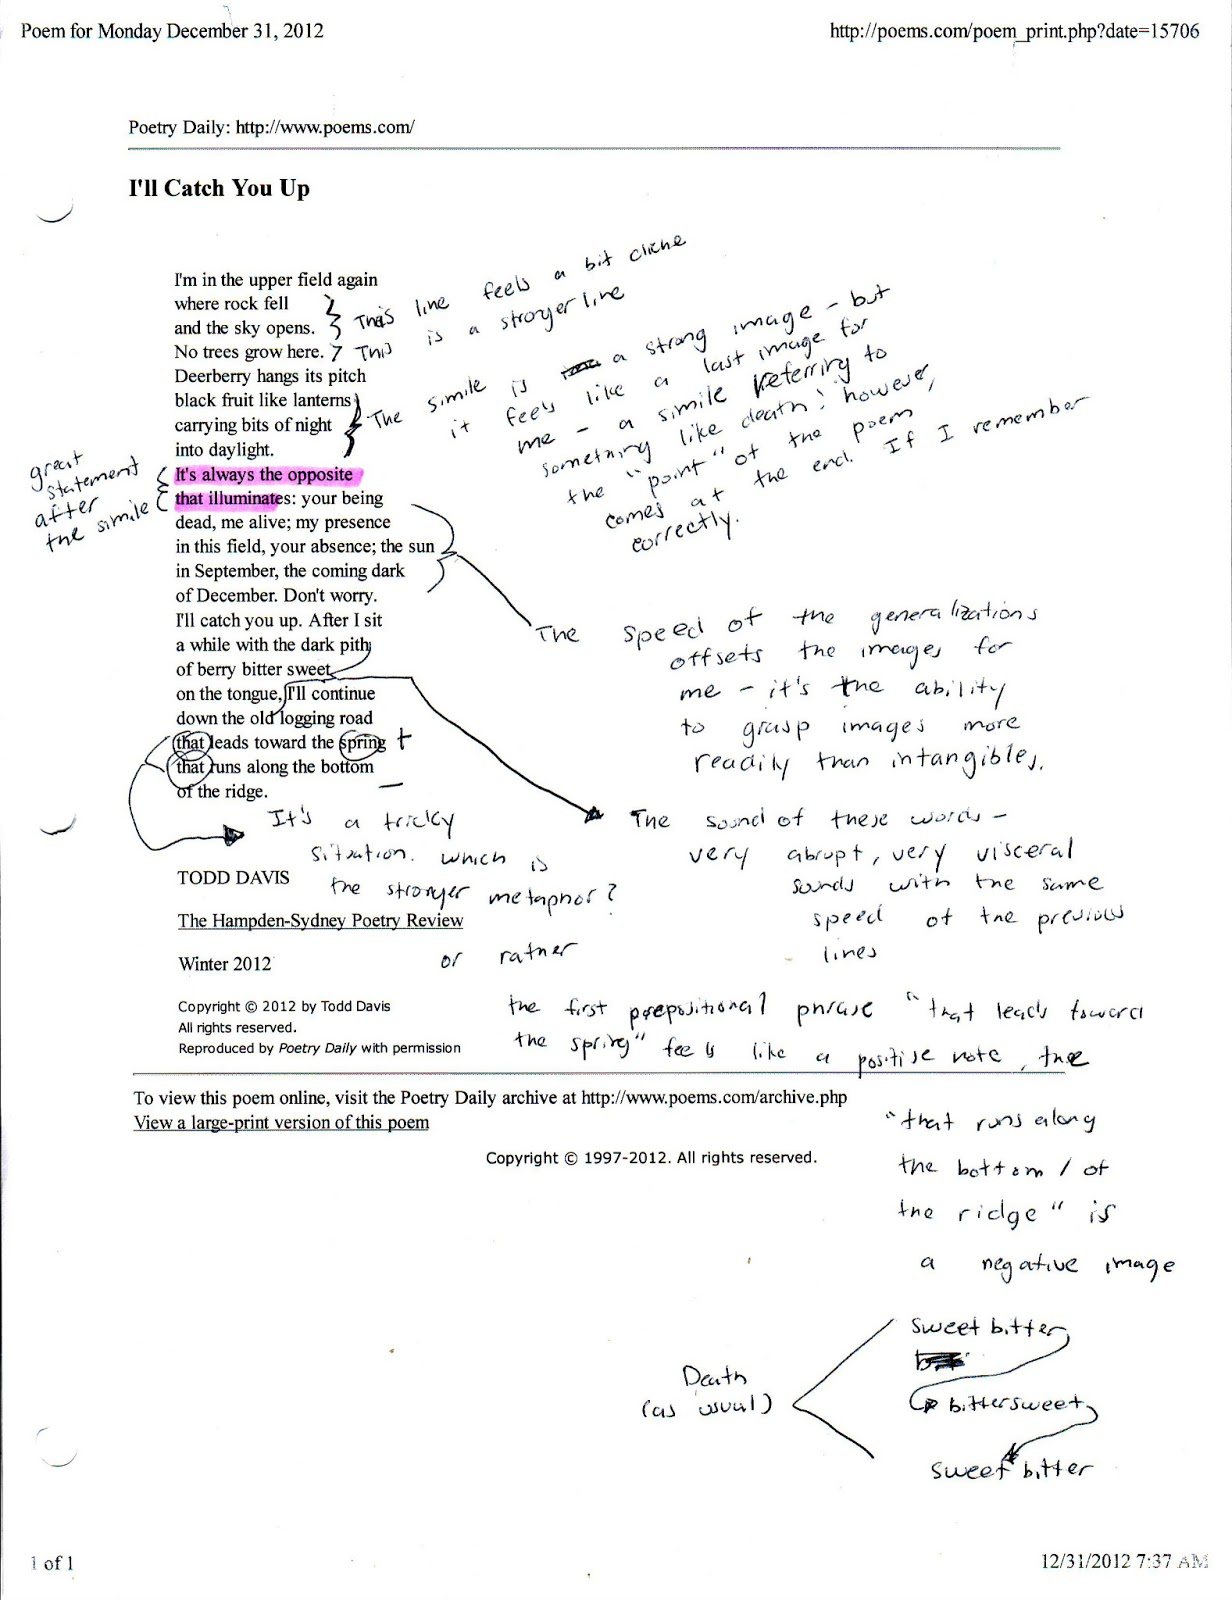 gwen harwood critical study essay Prime education offers a comprehensive sample essay human experience gwen harwood join prime education to learn more about essay essay gwen harwood critical study.